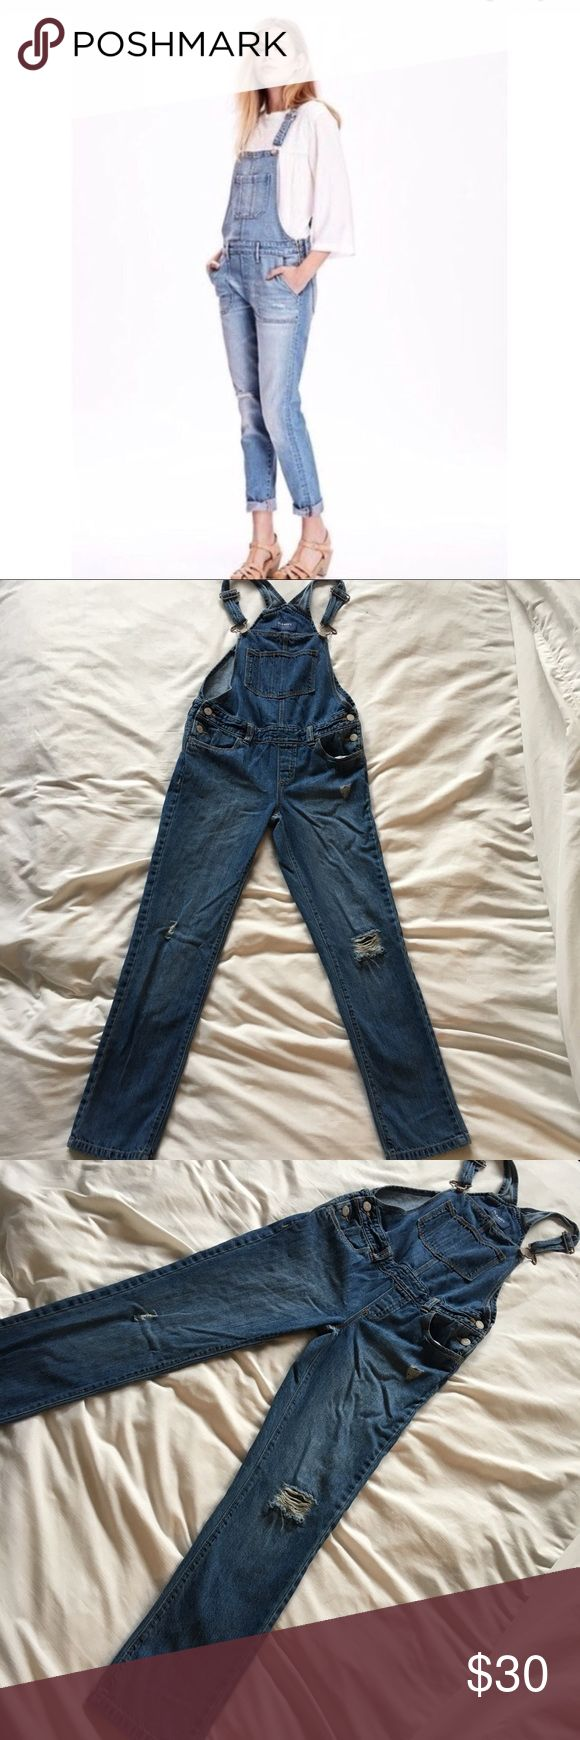 Old Navy Boyfriend Skinny Overall Med Wash SZ L Old Navy Boyfriend Skinny Overall Med Wash SZ L. Perfect condition. On trend.  Approximate Measurements   Waist 28 Hips 30 Inseam 25 1/2 Old Navy Jeans Overalls